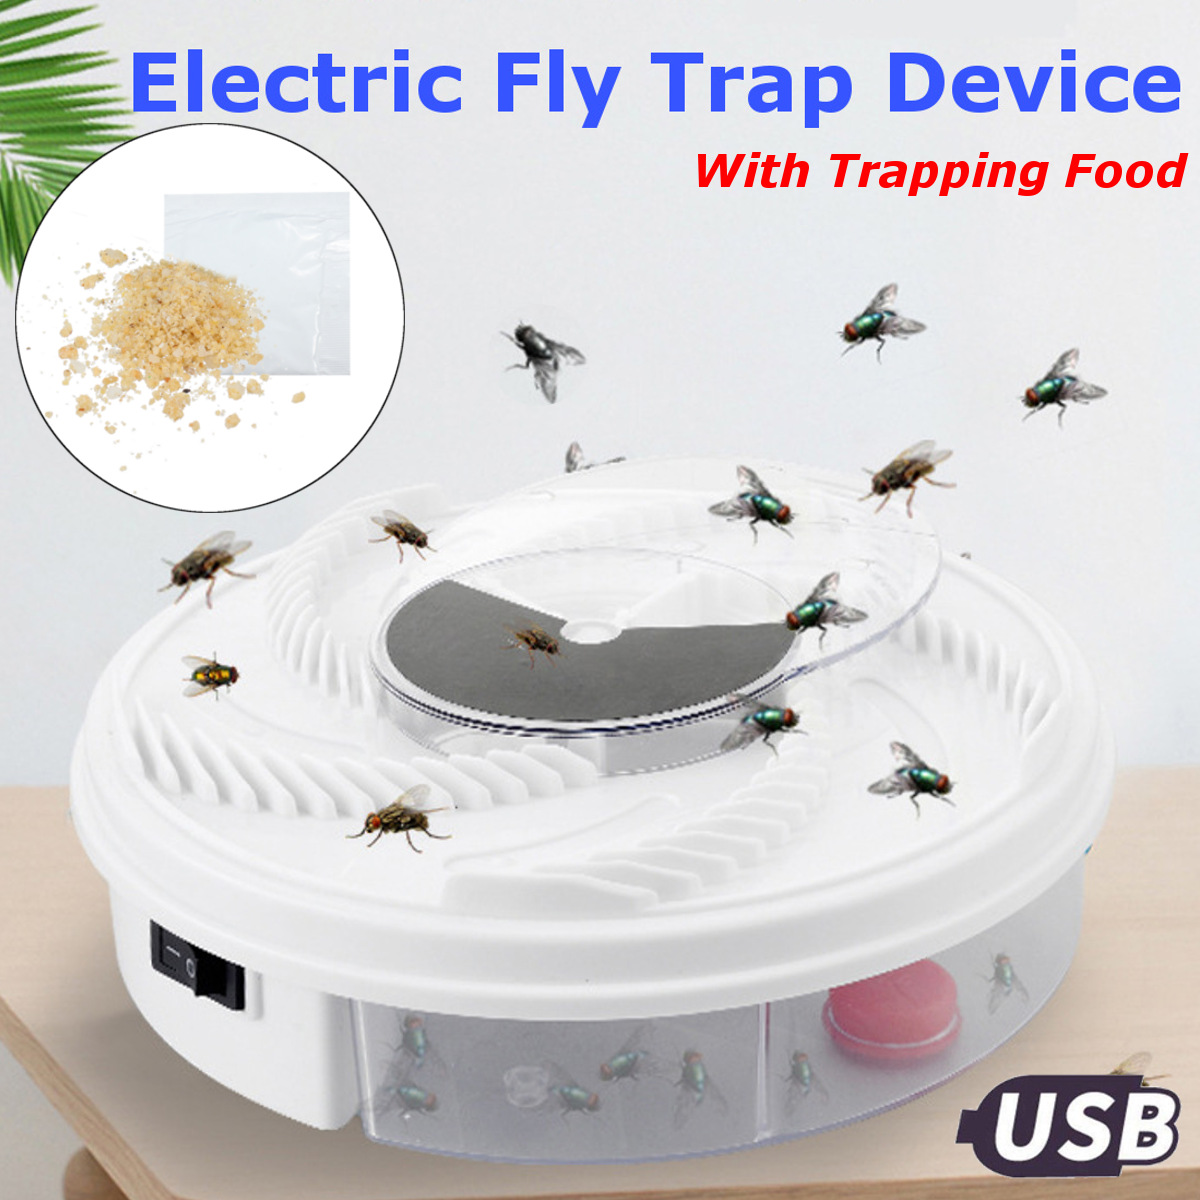 Electric Fly Trap Device Fly Catcher Trap Insect Killer Pests Control Propeller With USB Cable